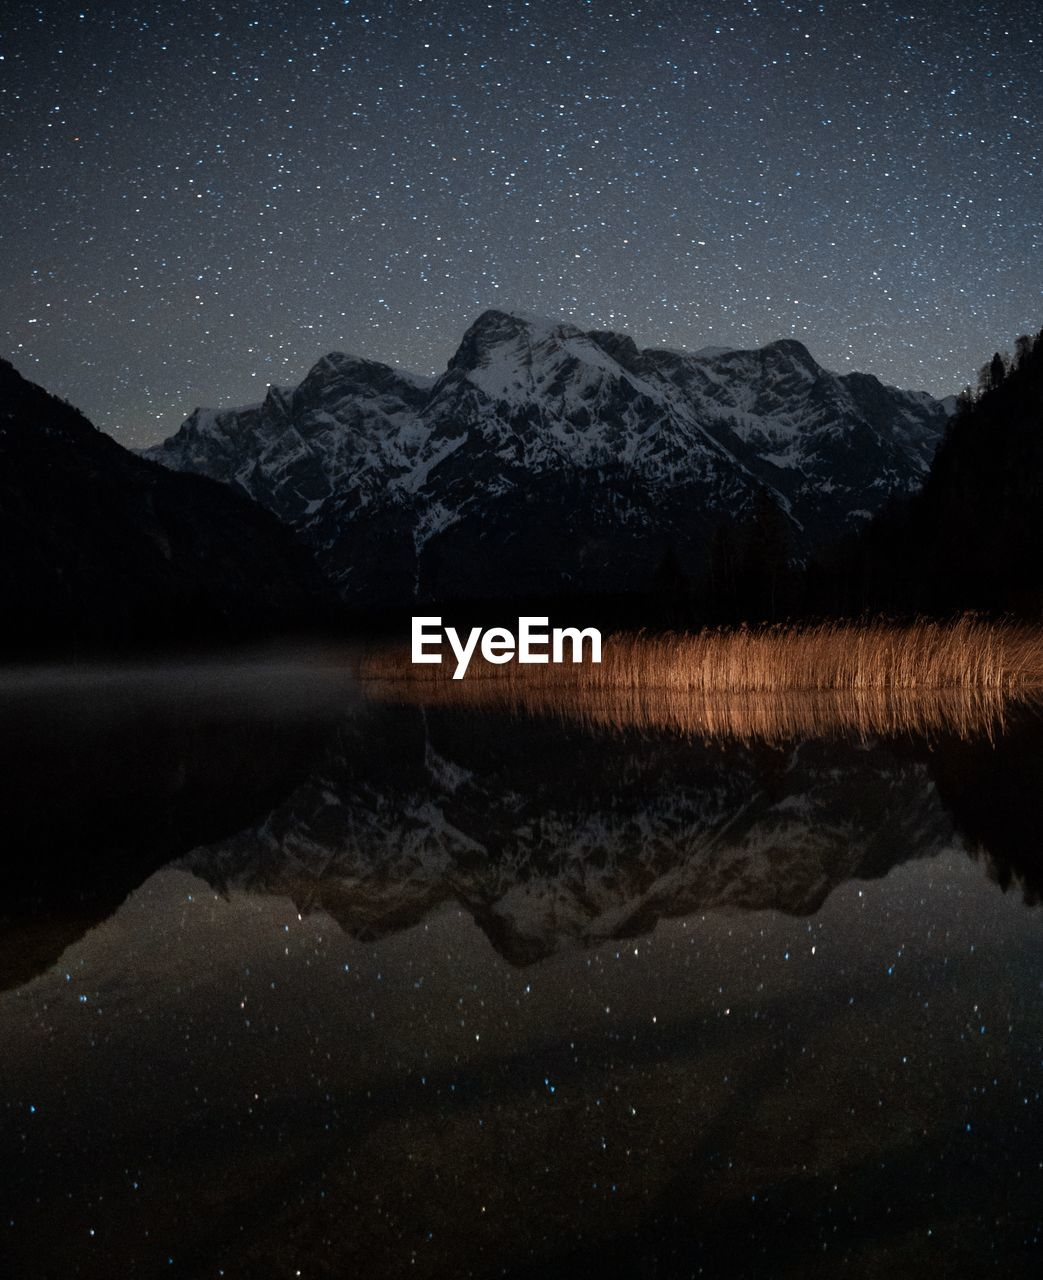 scenics - nature, night, astronomy, star - space, lake, water, beauty in nature, tranquility, sky, tranquil scene, space, reflection, waterfront, star, mountain, star field, galaxy, nature, no people, mountain range, space and astronomy, reflection lake